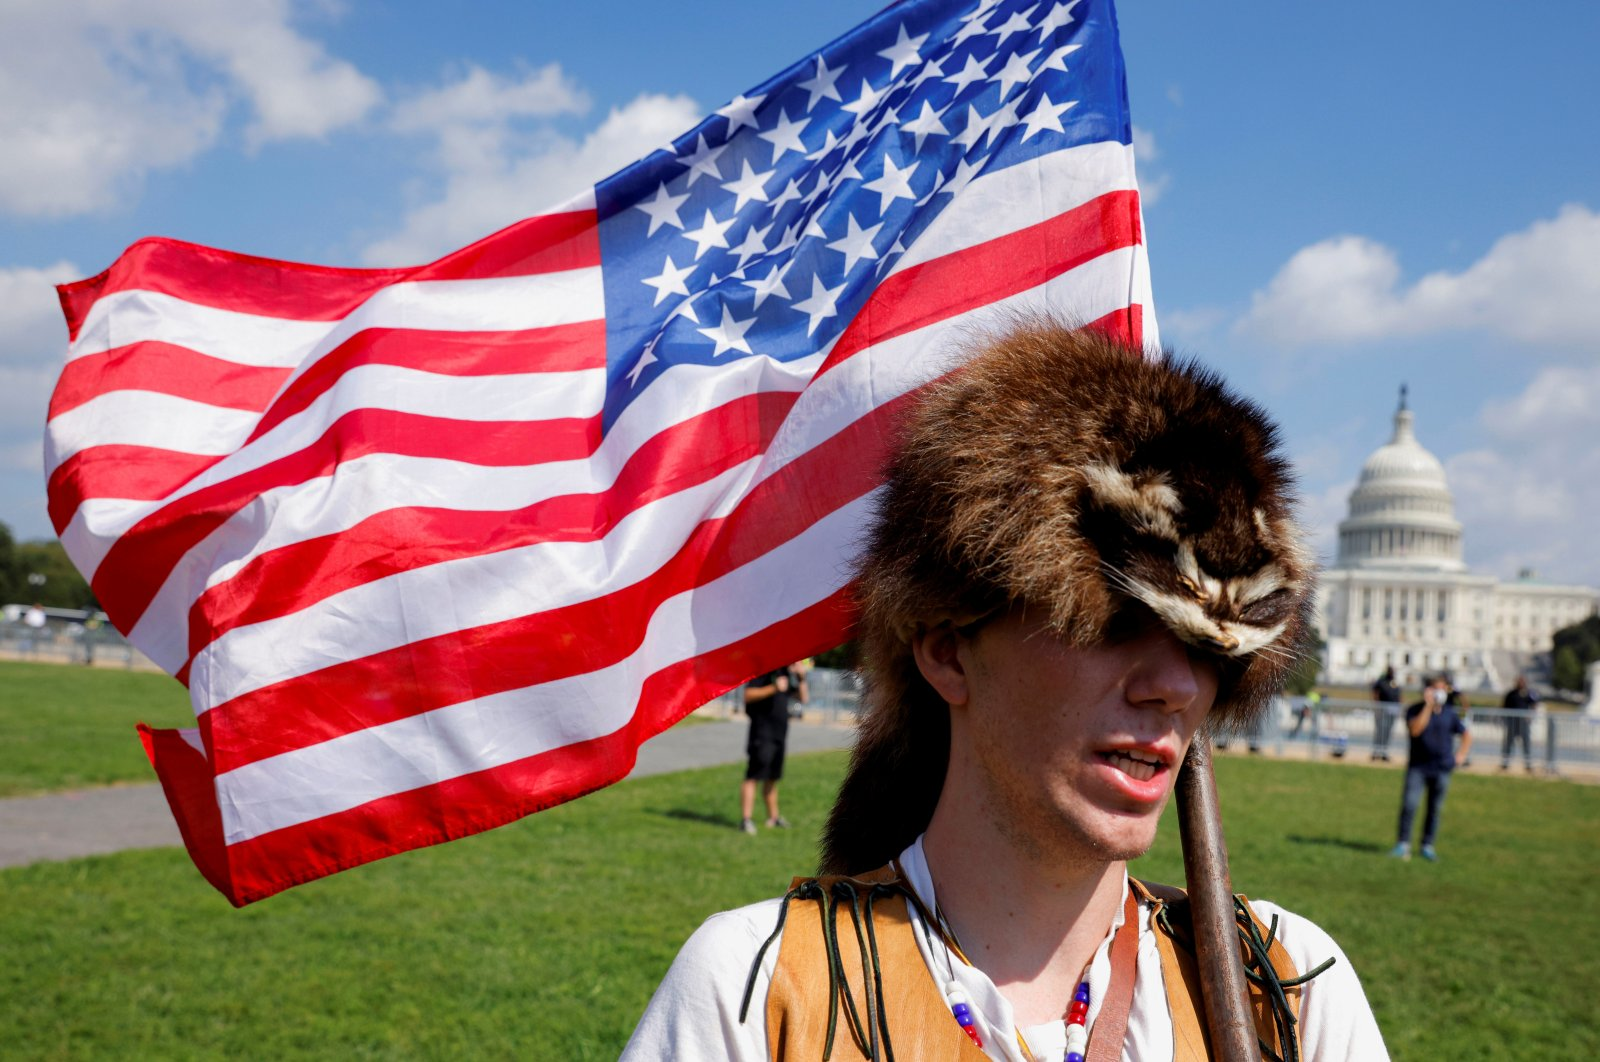 A man wearing a raccoon hat talks about his belief that former U.S. President Donald Trump won the election and that it was stolen from him through fraud, during a rally in support of defendants being prosecuted in the Jan. 6 attack on the Capitol, in Washington, D.C., U.S., Sept. 18, 2021. (REUTERS Photo)